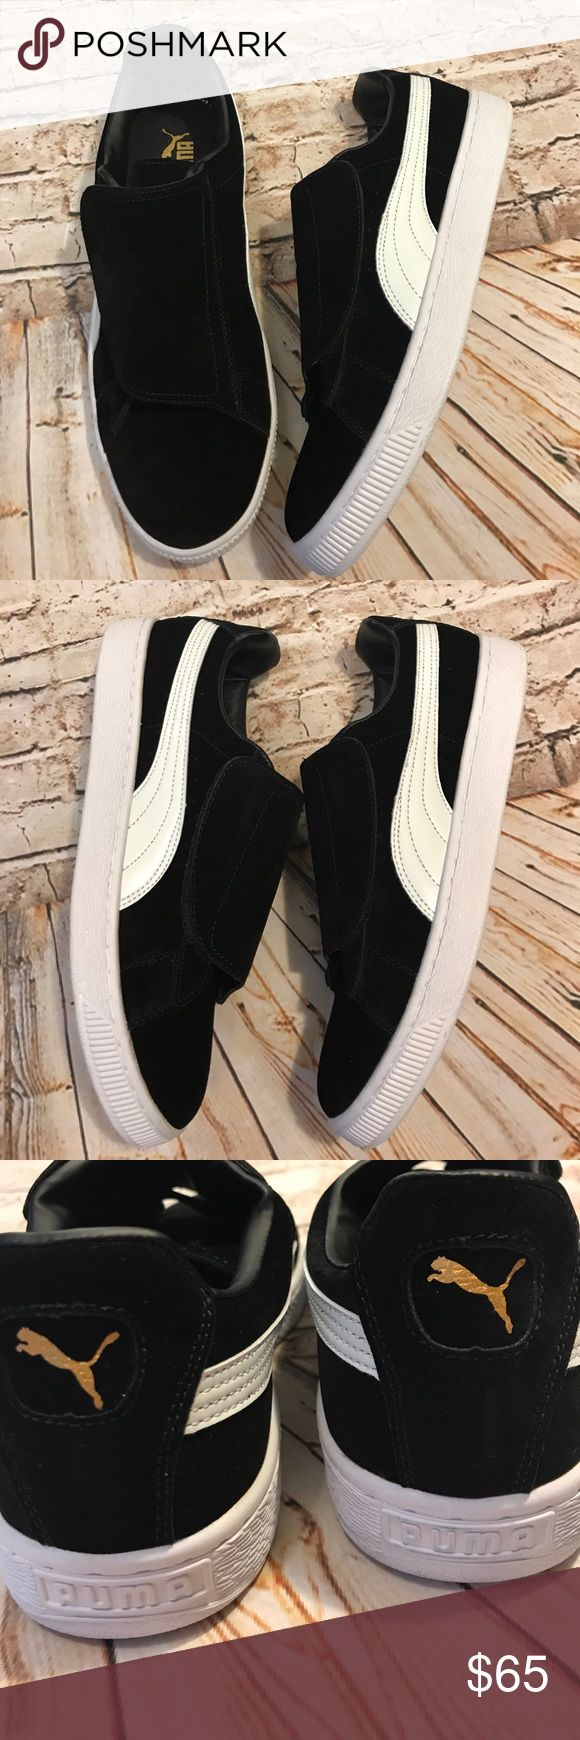 Men's Puma Basket sneaker with Velcro NWOT Men's Puma Basket sneaker with Velcro. NWOT these are a size 10 but my friend says they run small and would better fit a 9.5 so I'm adding measurements just Incase. Any feedback on how you think the sizing runs would be greatly appreciated.  Heel to toe measures a little over 11.5 inches Width measures a little over 4 inches  Suede leather Puma Shoes Sneakers